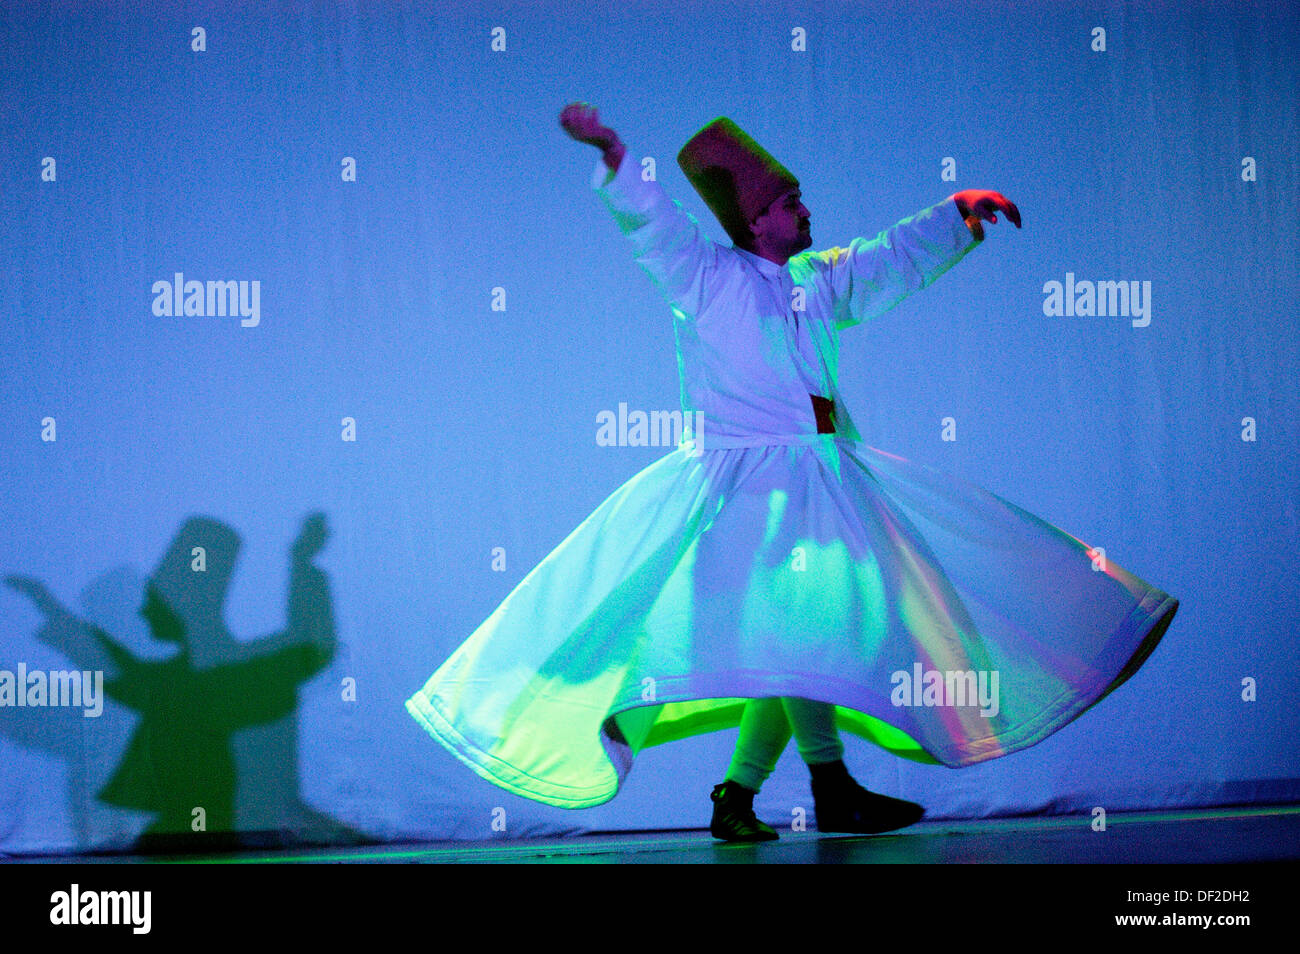 Dervish whirling and dancing. Turkey - Stock Image